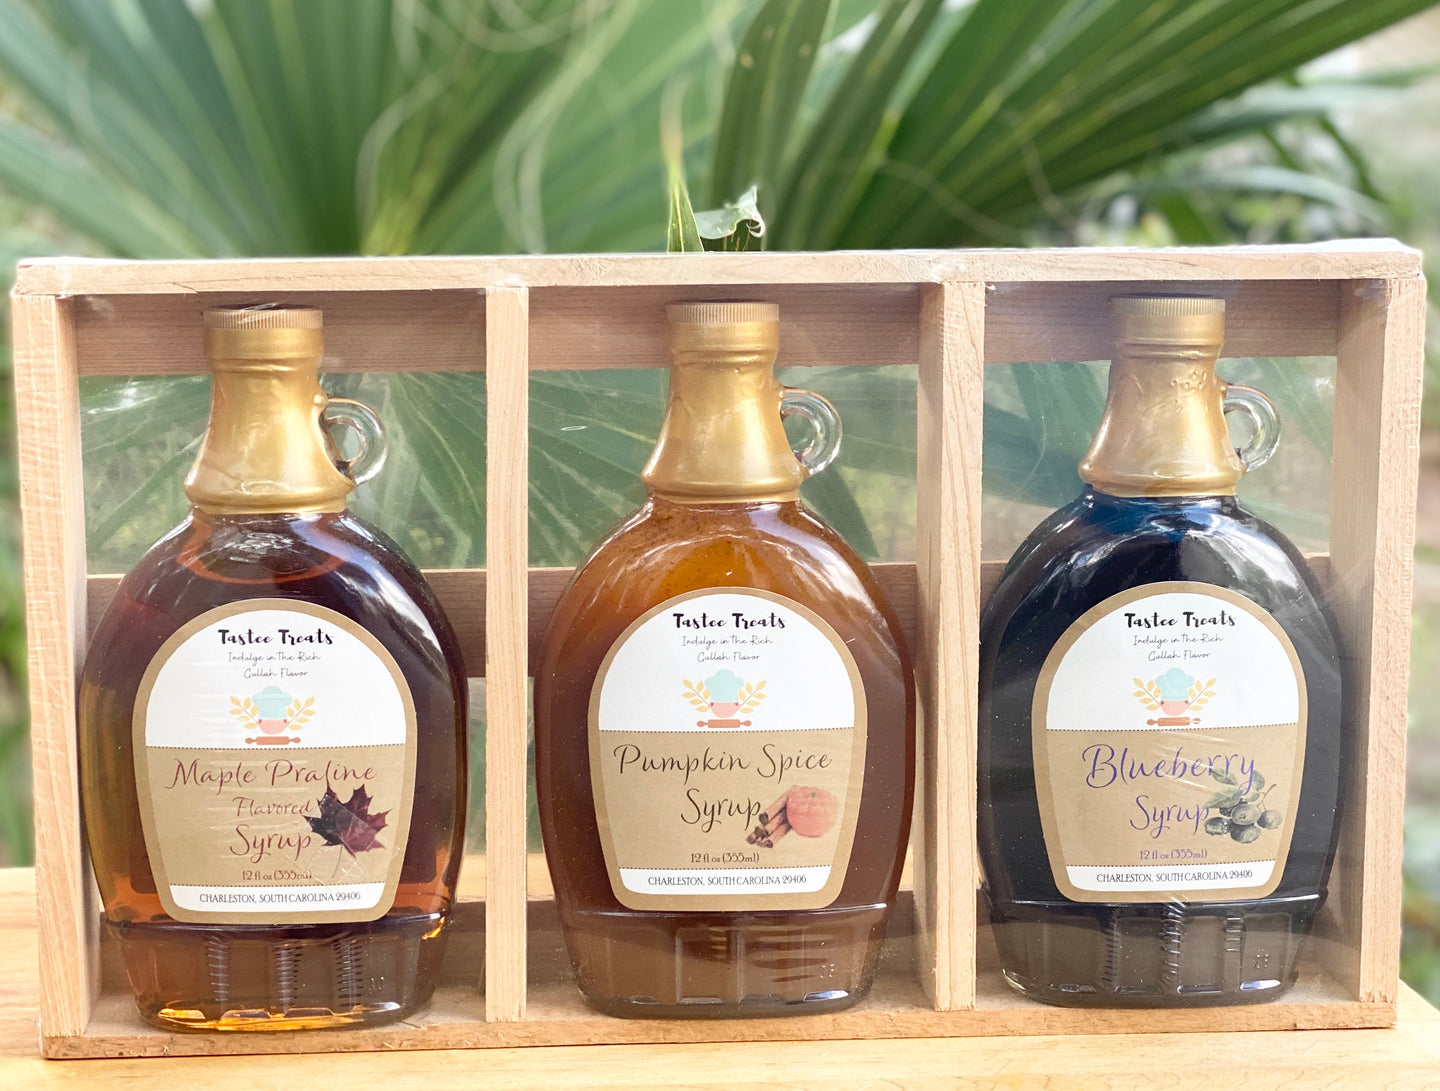 Handmade Assorted Syrups Collection-(Maple Praline, Pumpkin Spice, and Blueberry Flavors)